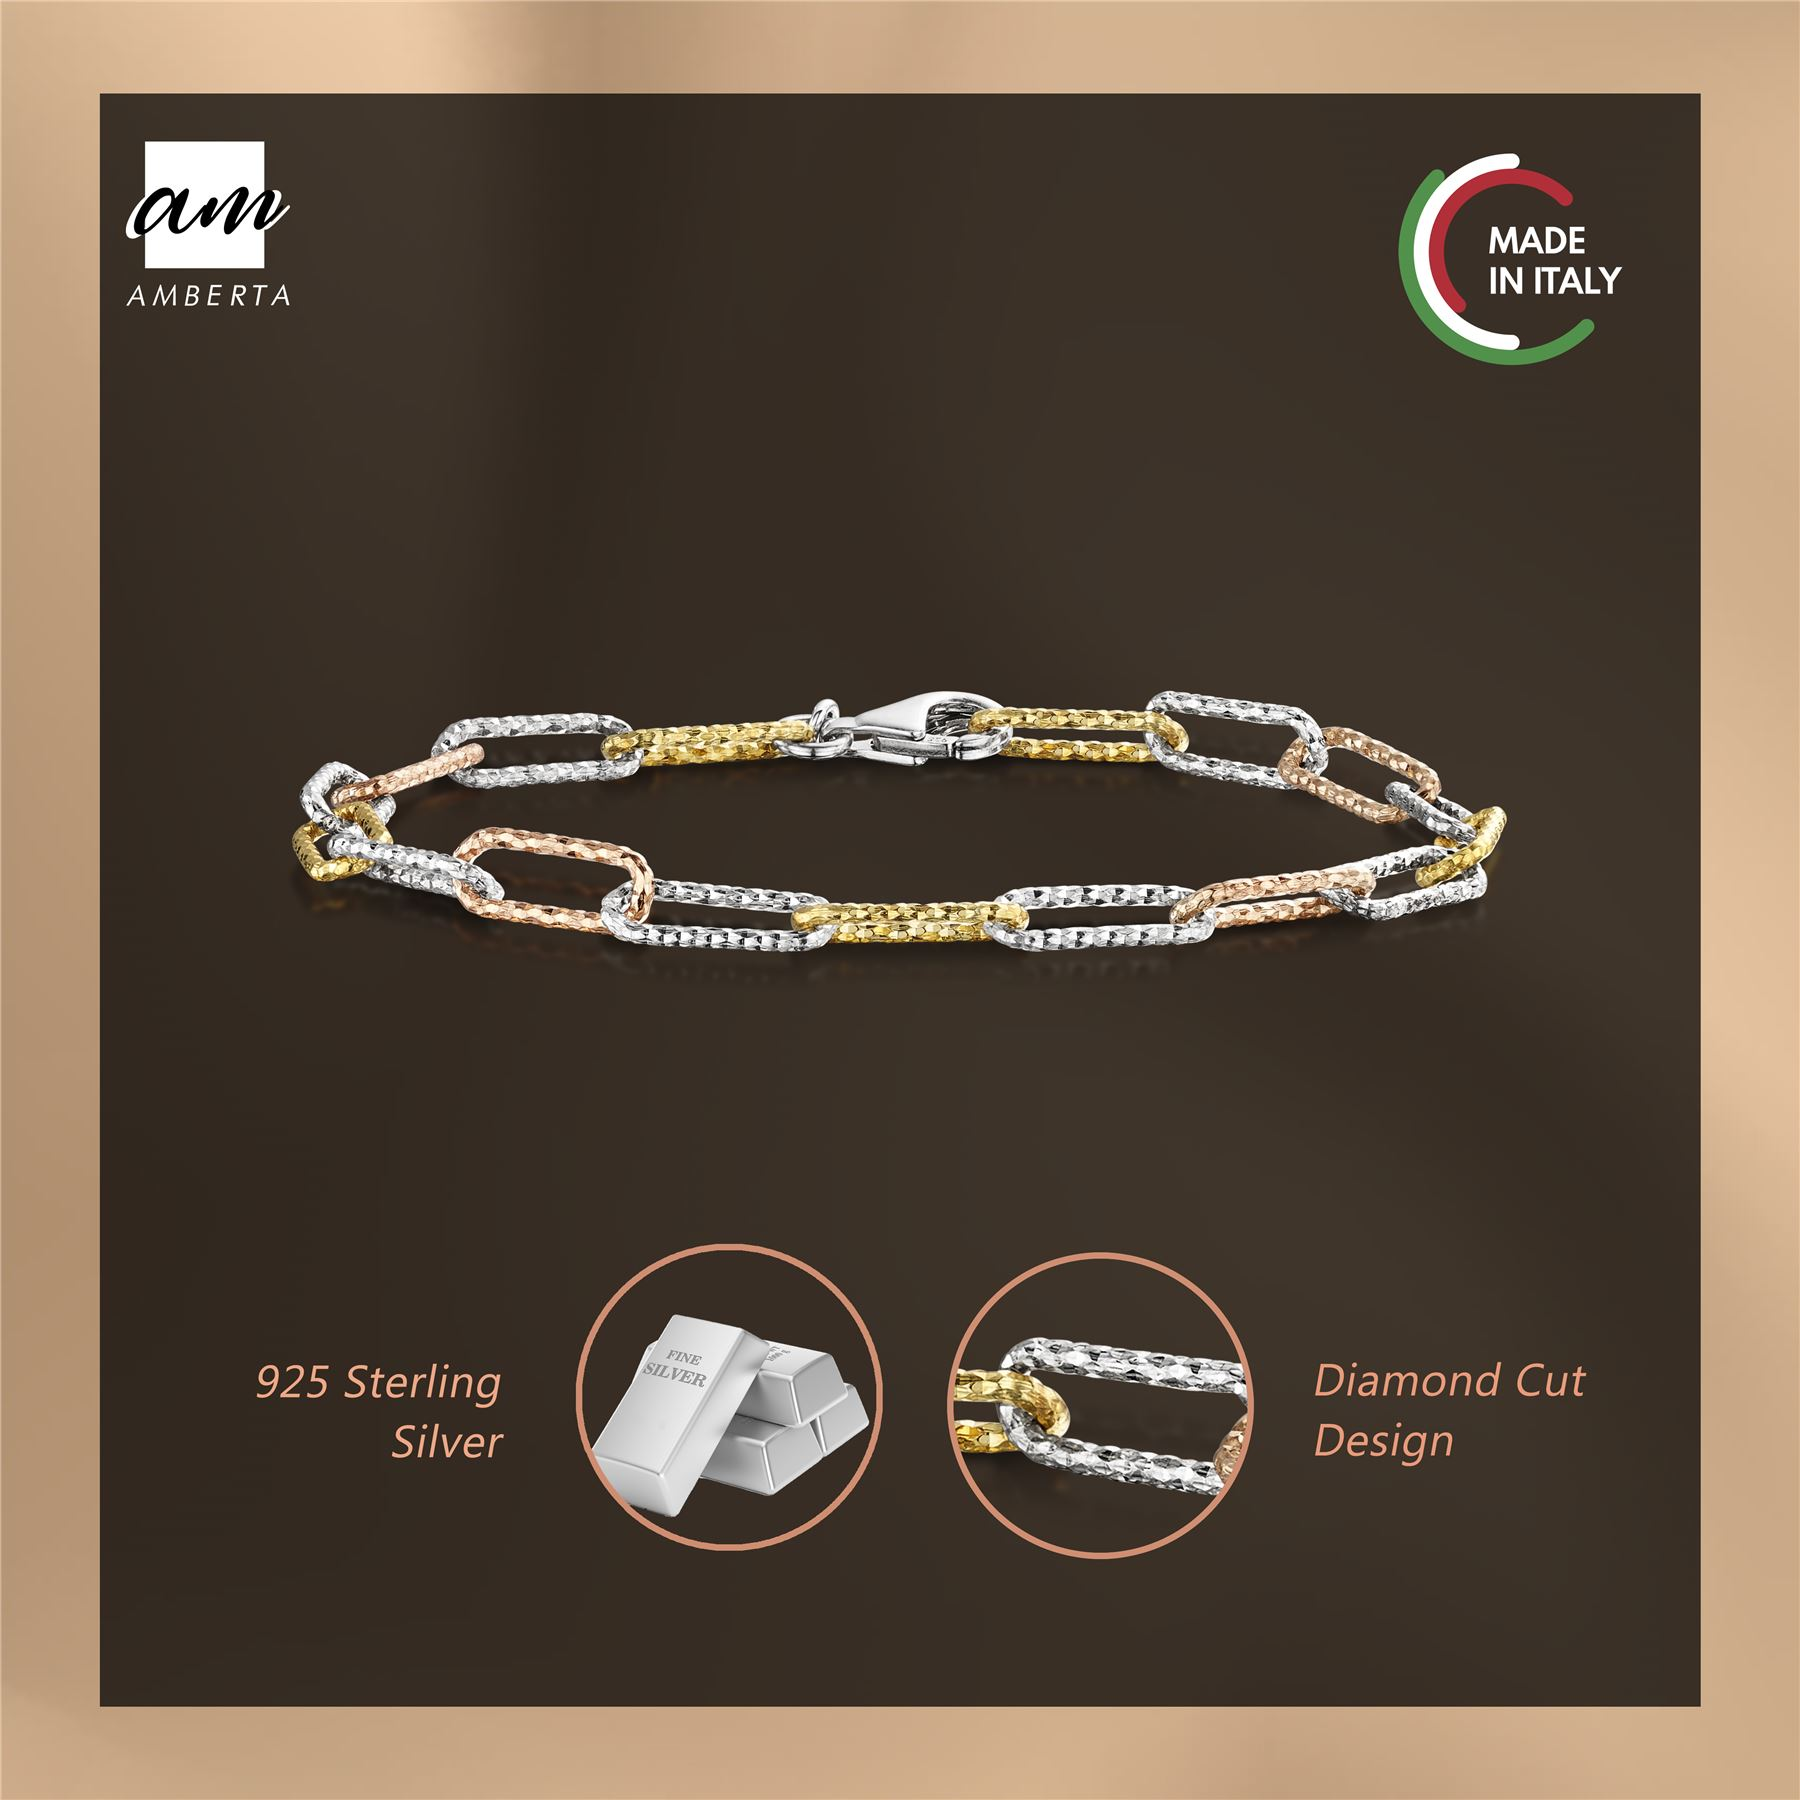 Amberta-Genuine-Real-925-Sterling-Silver-Chain-Bracelet-for-Women-from-Italy miniature 5